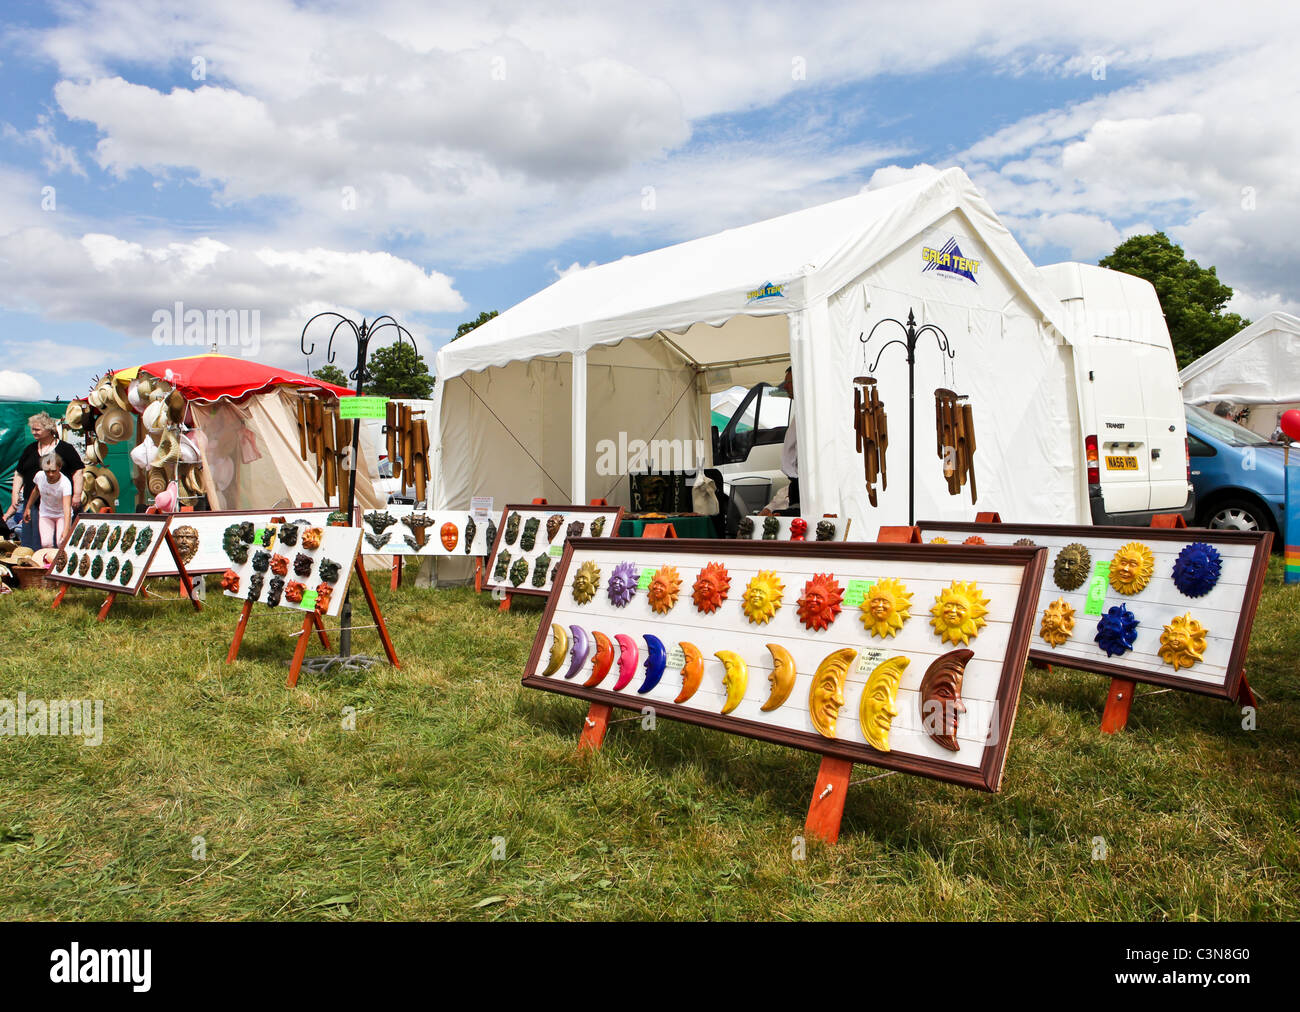 Colorful souvenirs on sale at the South Suffolk Show 2011 - Stock Image